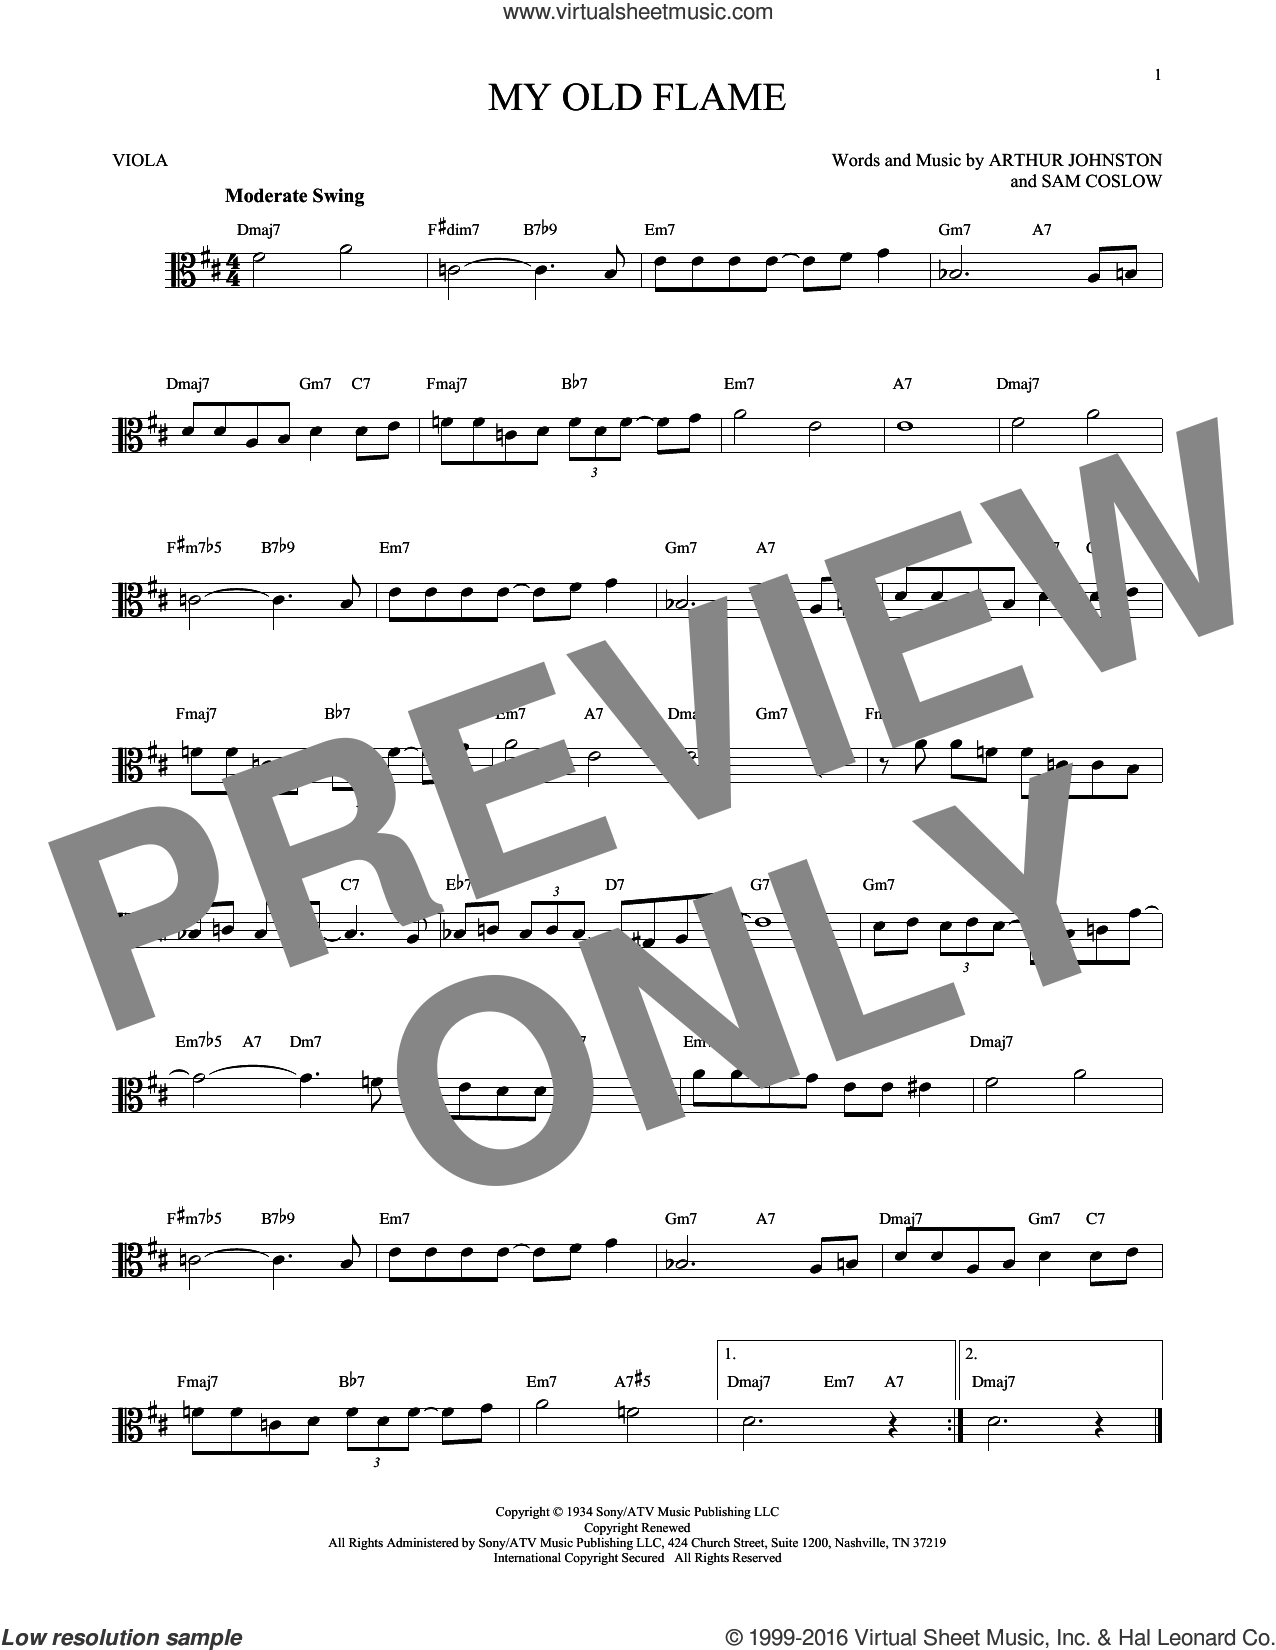 My Old Flame sheet music for viola solo by Arthur Johnston, Peggy Lee and Sam Coslow, intermediate skill level